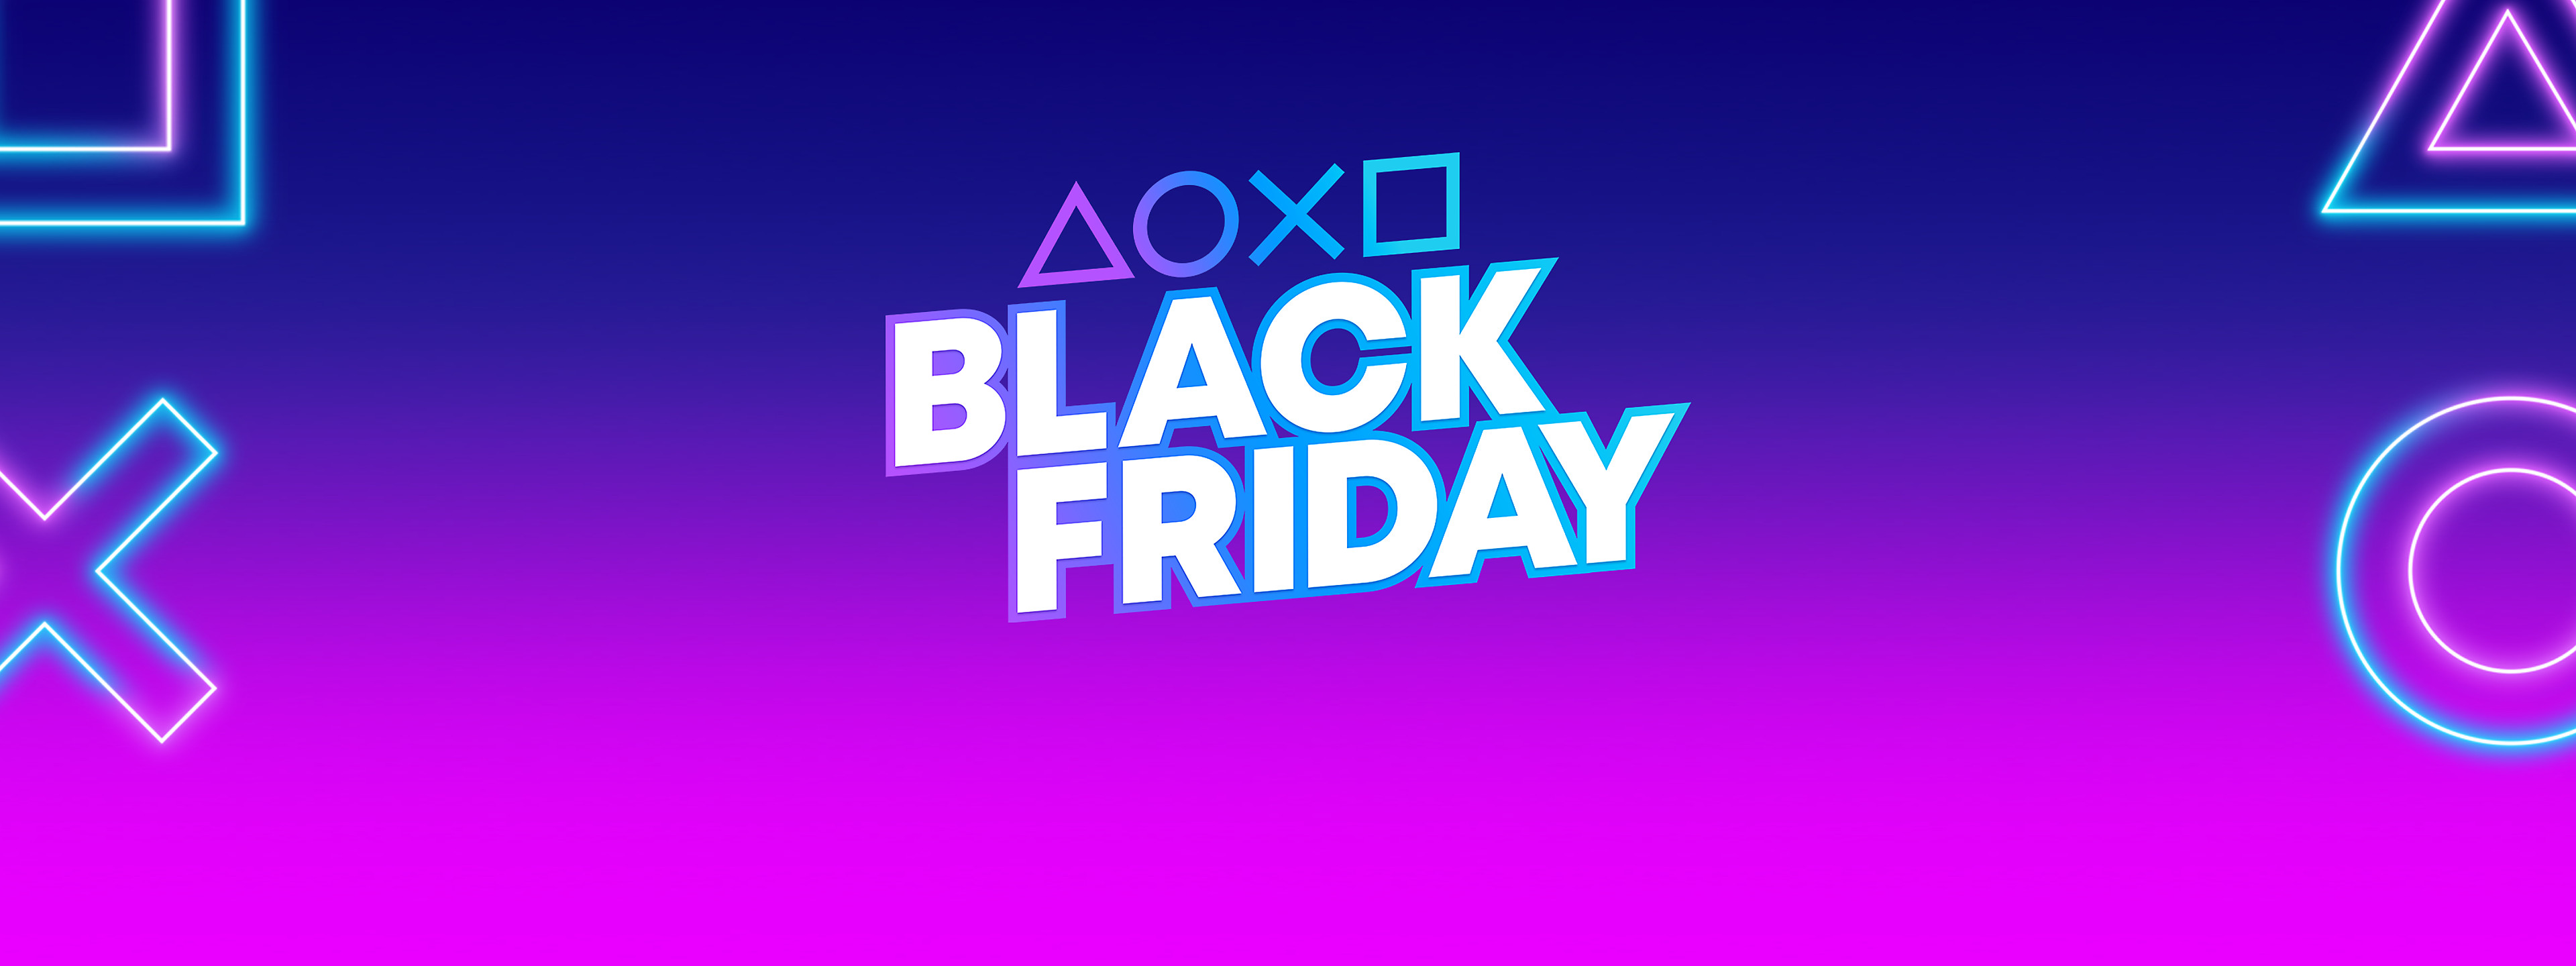 Black Friday 2020 - November 20th - 30th